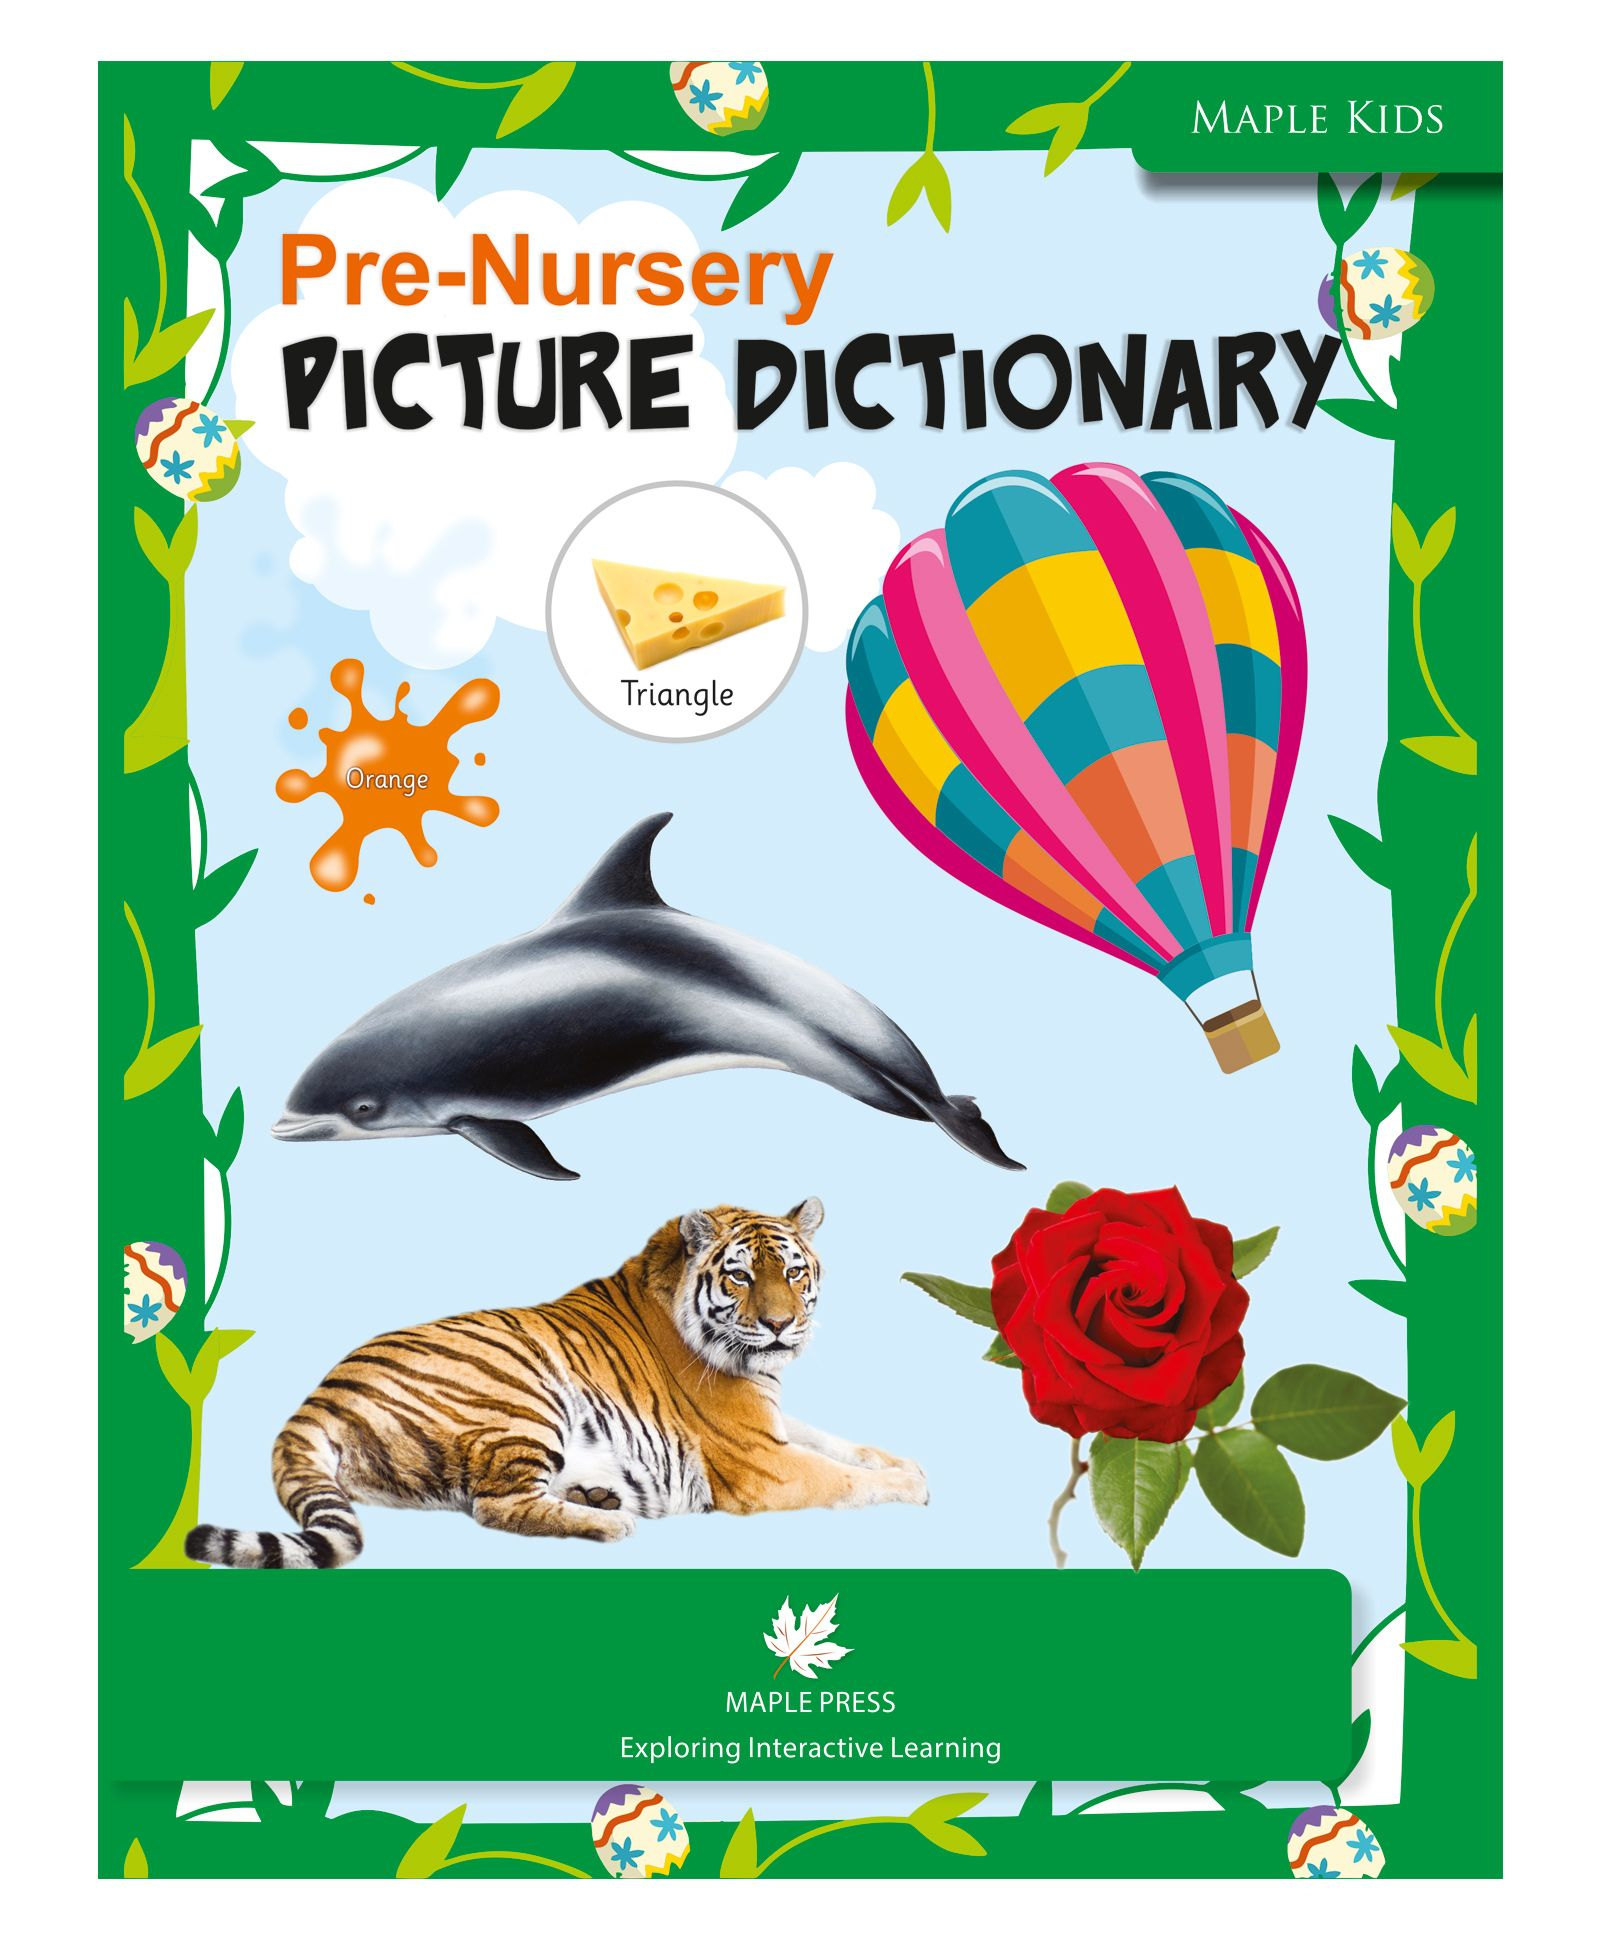 PreNursery Picture Dictionary English Online in India, Buy at Best Price  from Firstcry com - 1205787